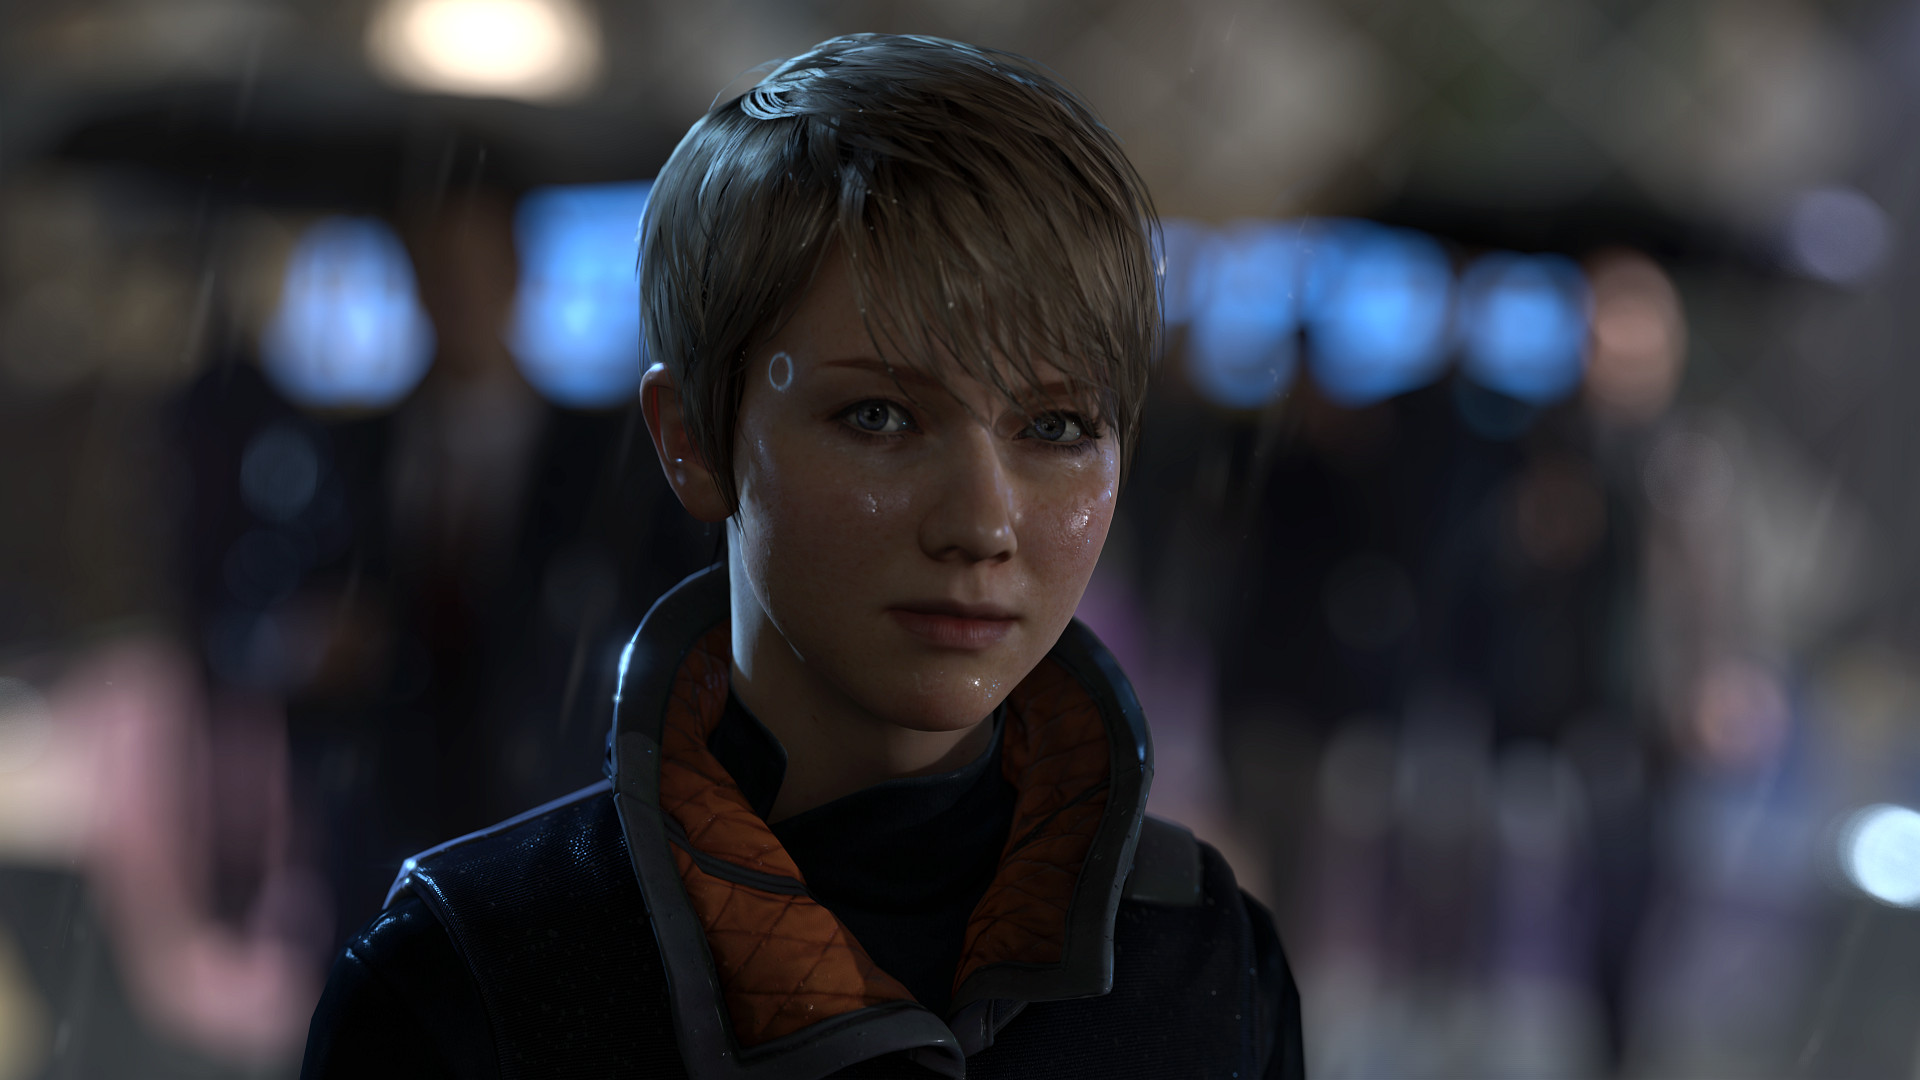 Quantic Dreams dejará de desarrollar exclusivos para Playstation